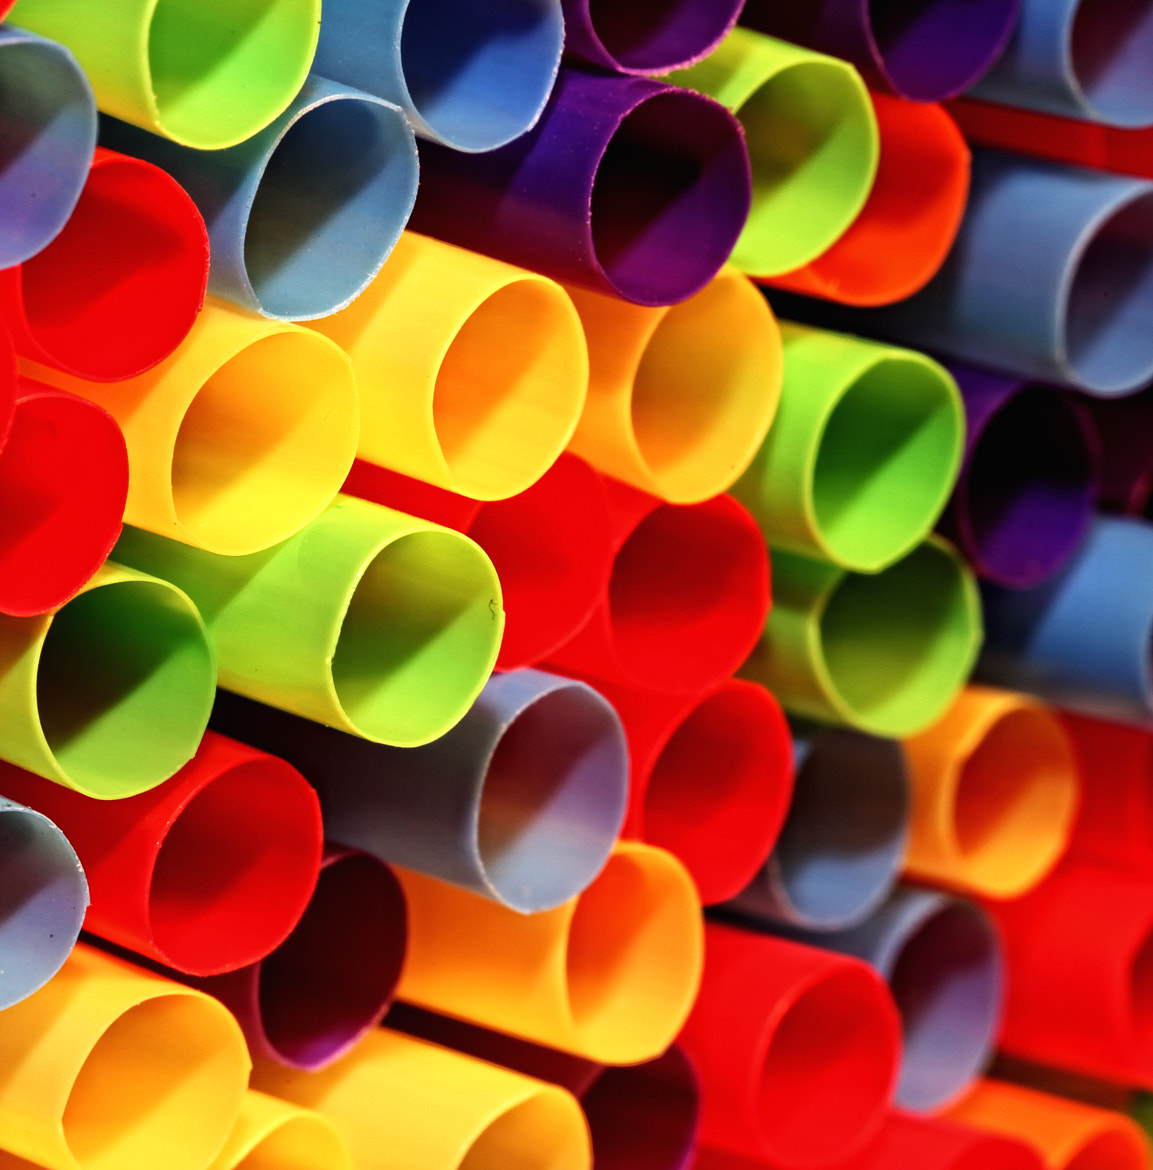 Photograph Straws by Cris T on 500px